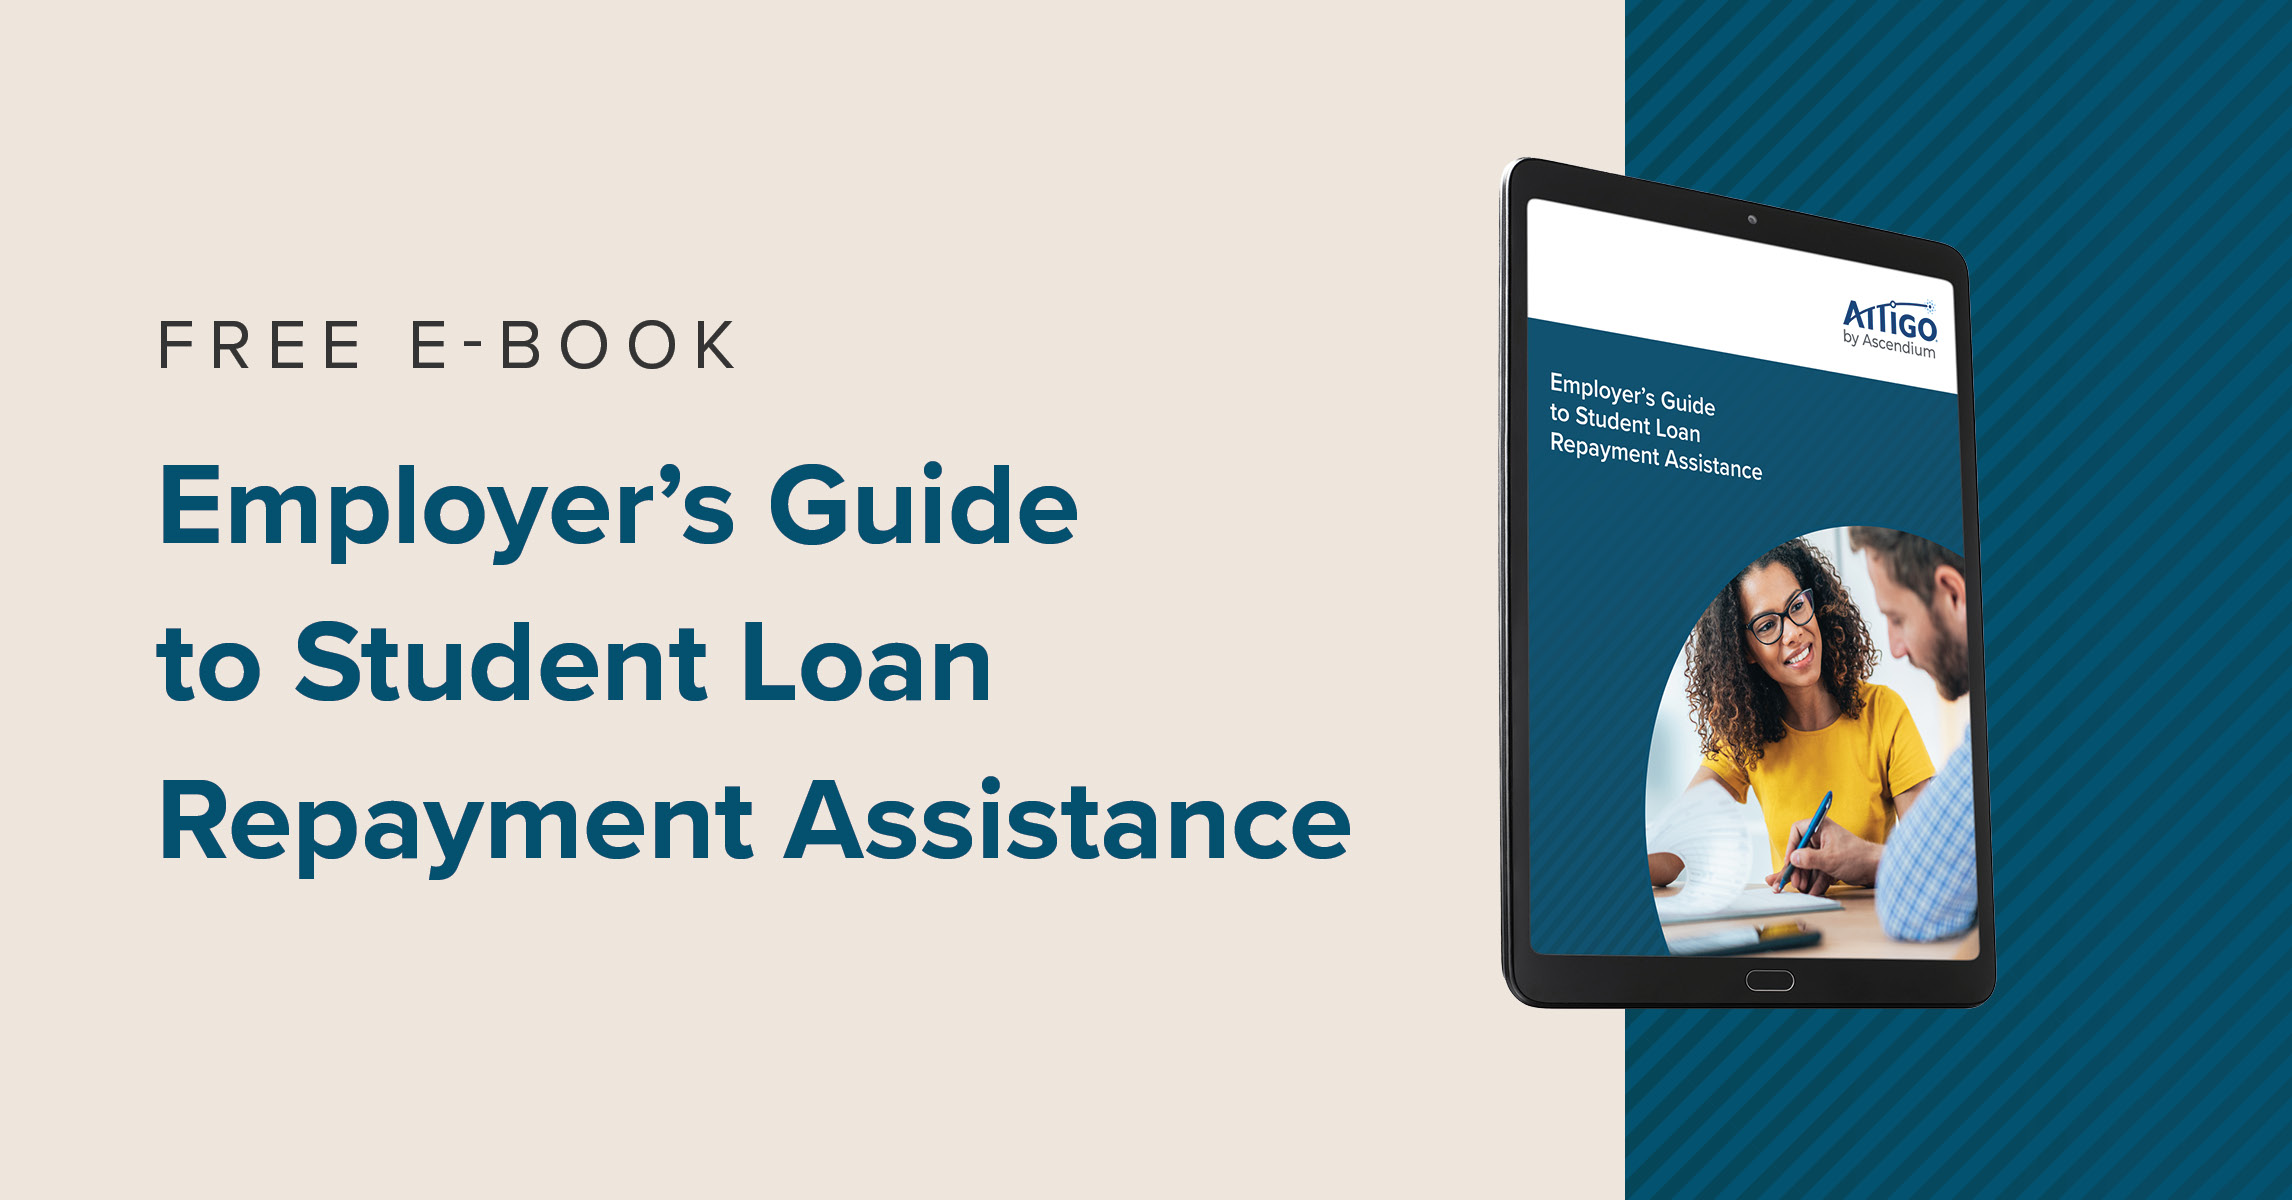 Get our Free E-Book the Employer's Guide to Student Loan Repayment Assistance